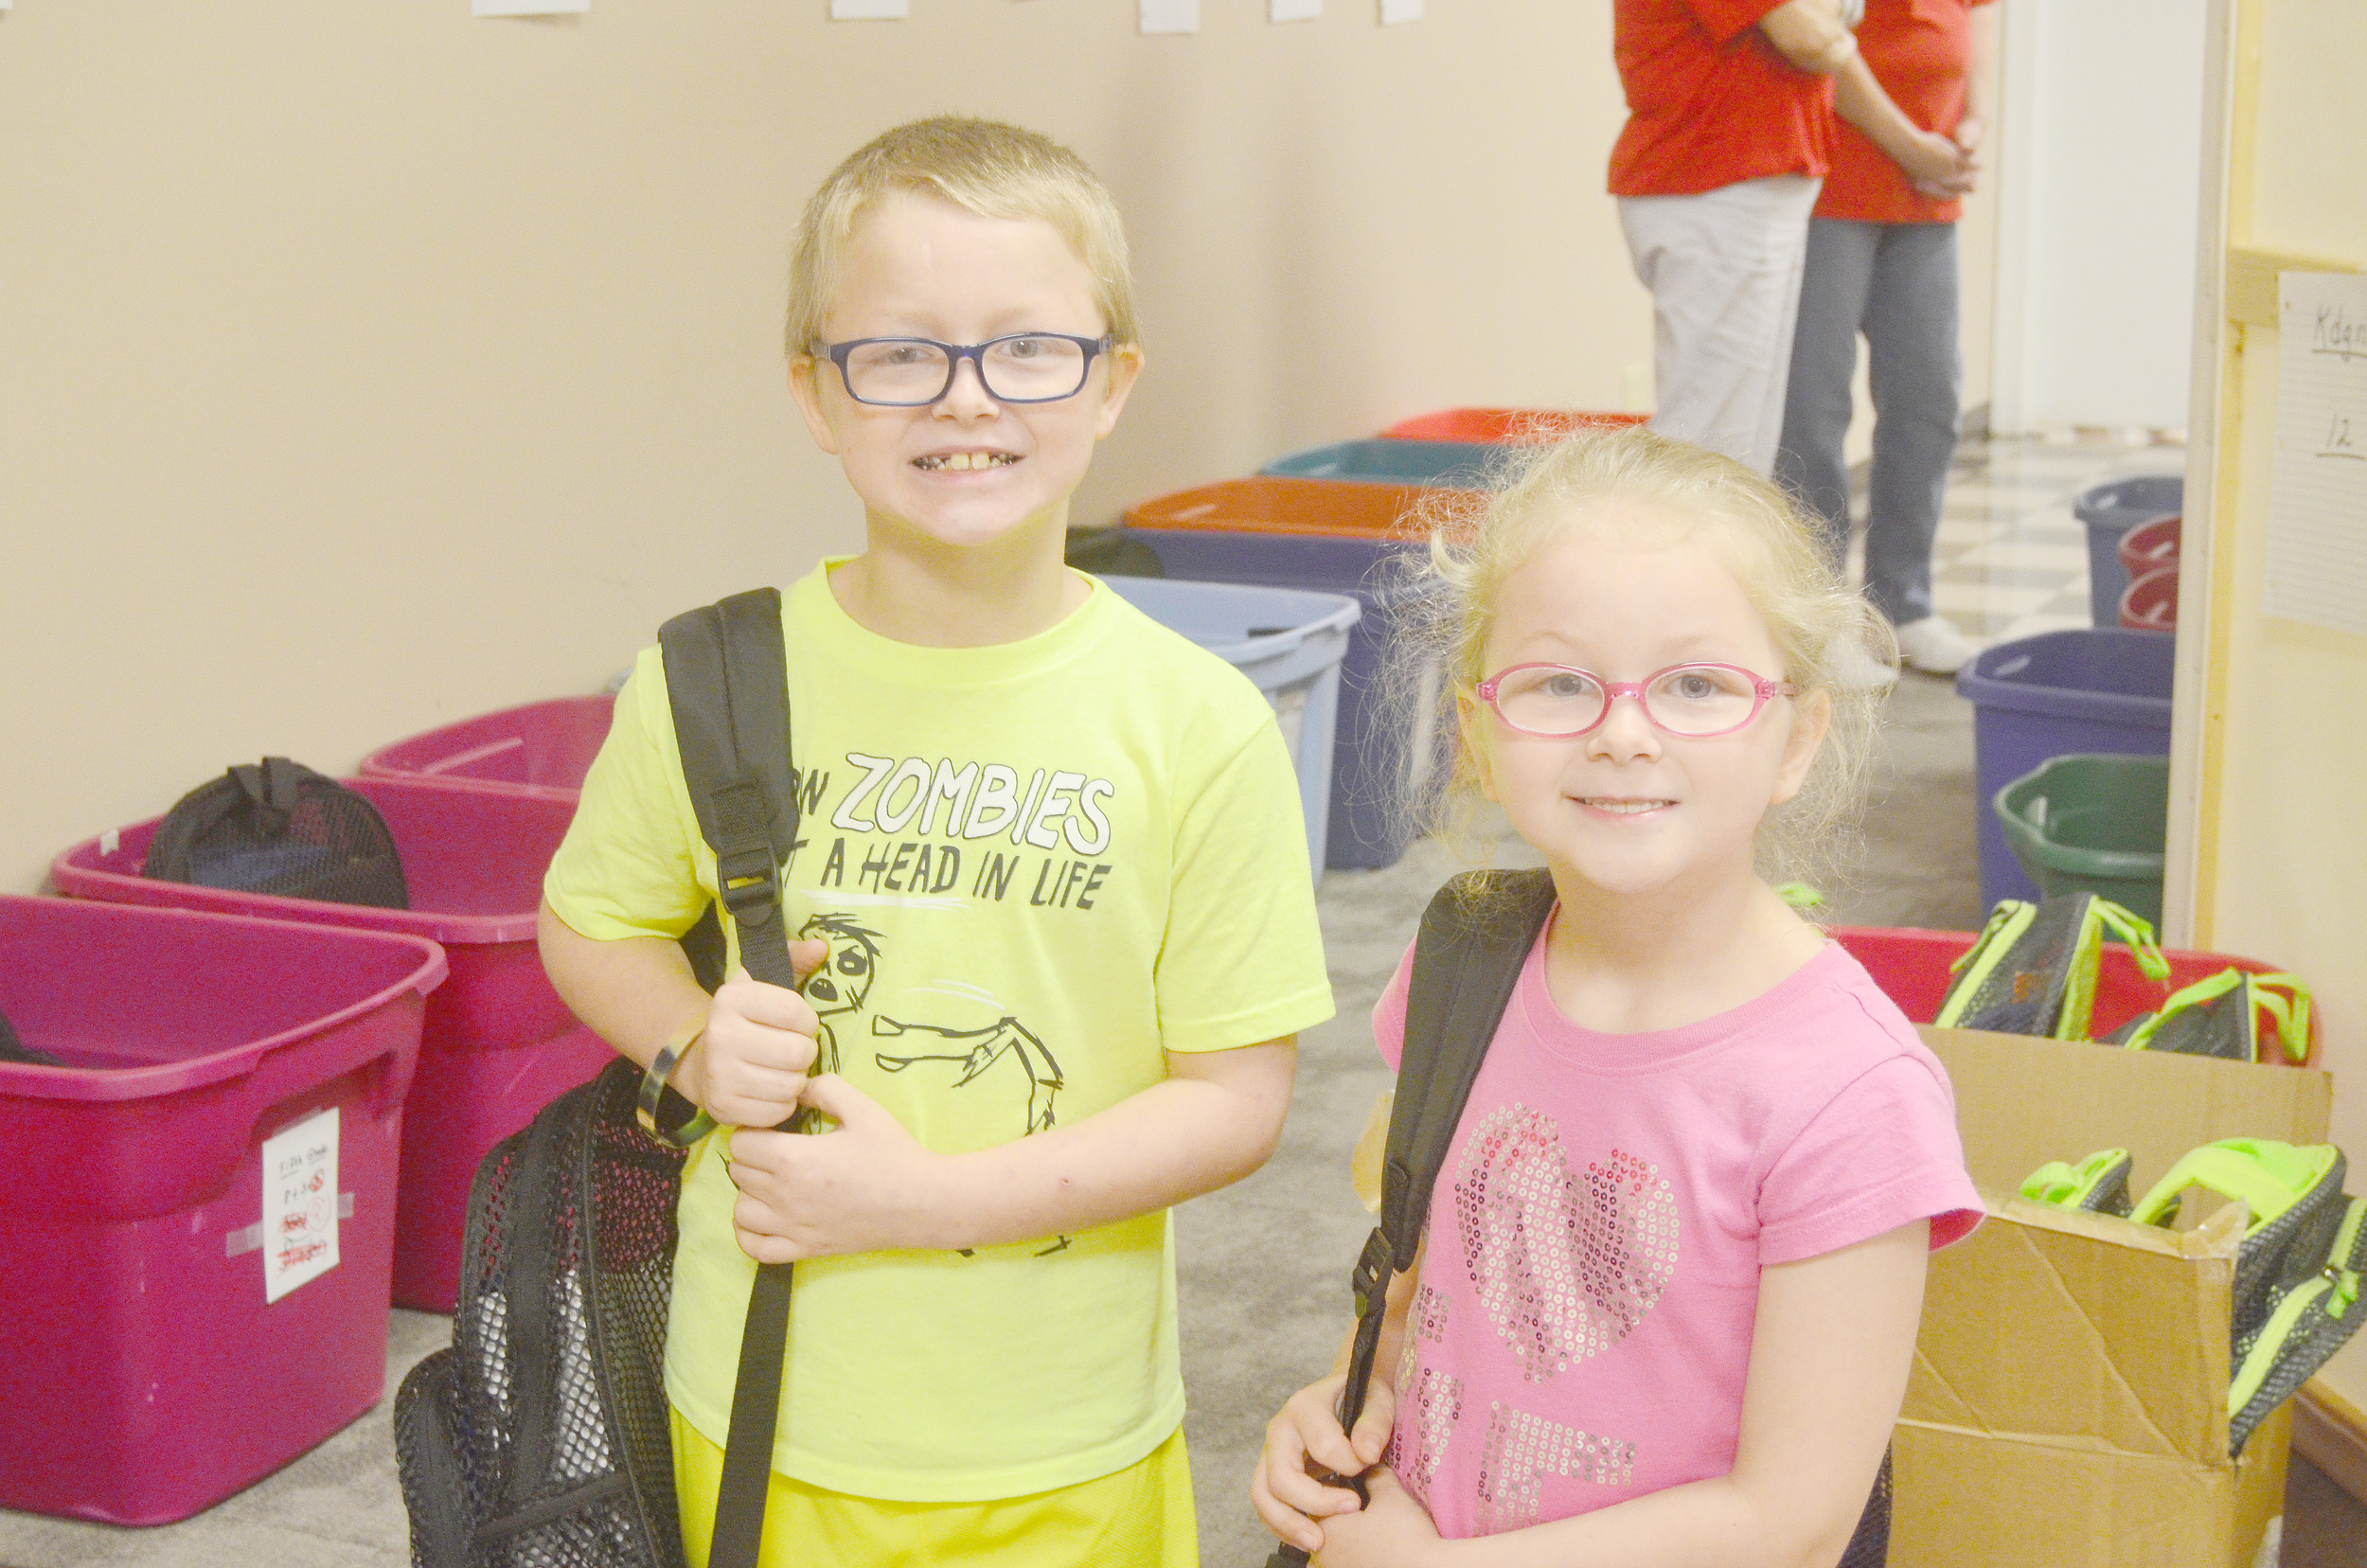 The Mission of Hope in Dora gave away backpacks filled with schools supplies to 100 children on Thursday morning. Daily Mountain Eagle - Lea Rizzo